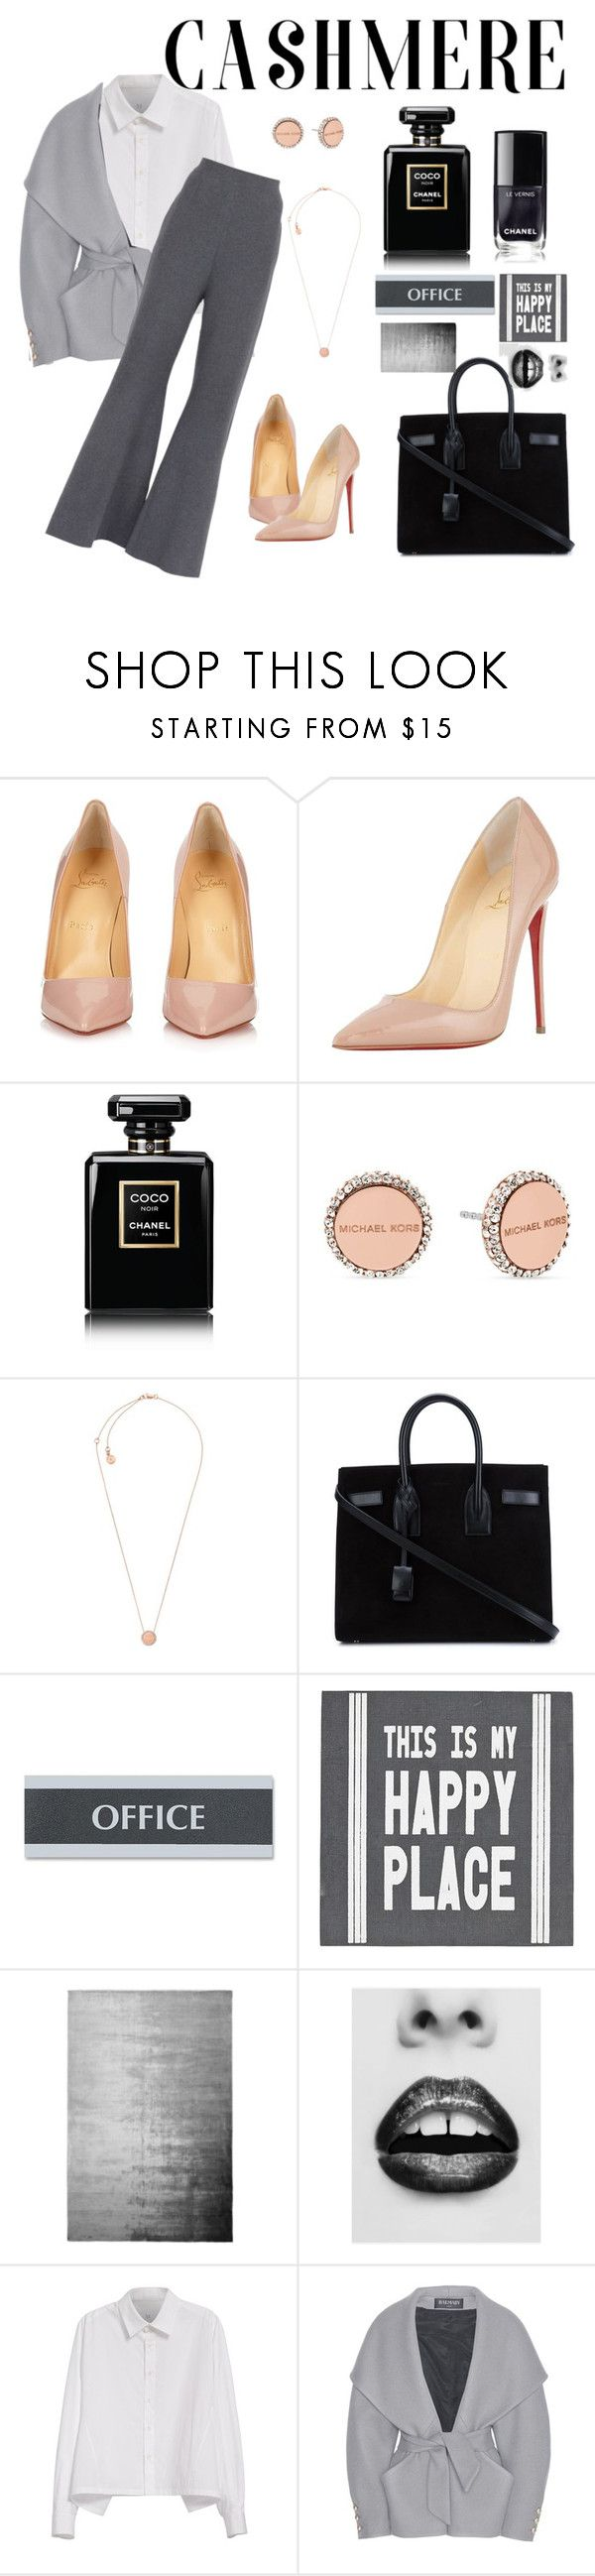 """Monocromatico."" by bizyhalik-1 ❤ liked on Polyvore featuring Christian Louboutin, Chanel, Michael Kors, Yves Saint Laurent, U.S. Stamp & Sign, Pier 1 Imports, Designers Guild, Y's by Yohji Yamamoto, Balmain and STELLA McCARTNEY"